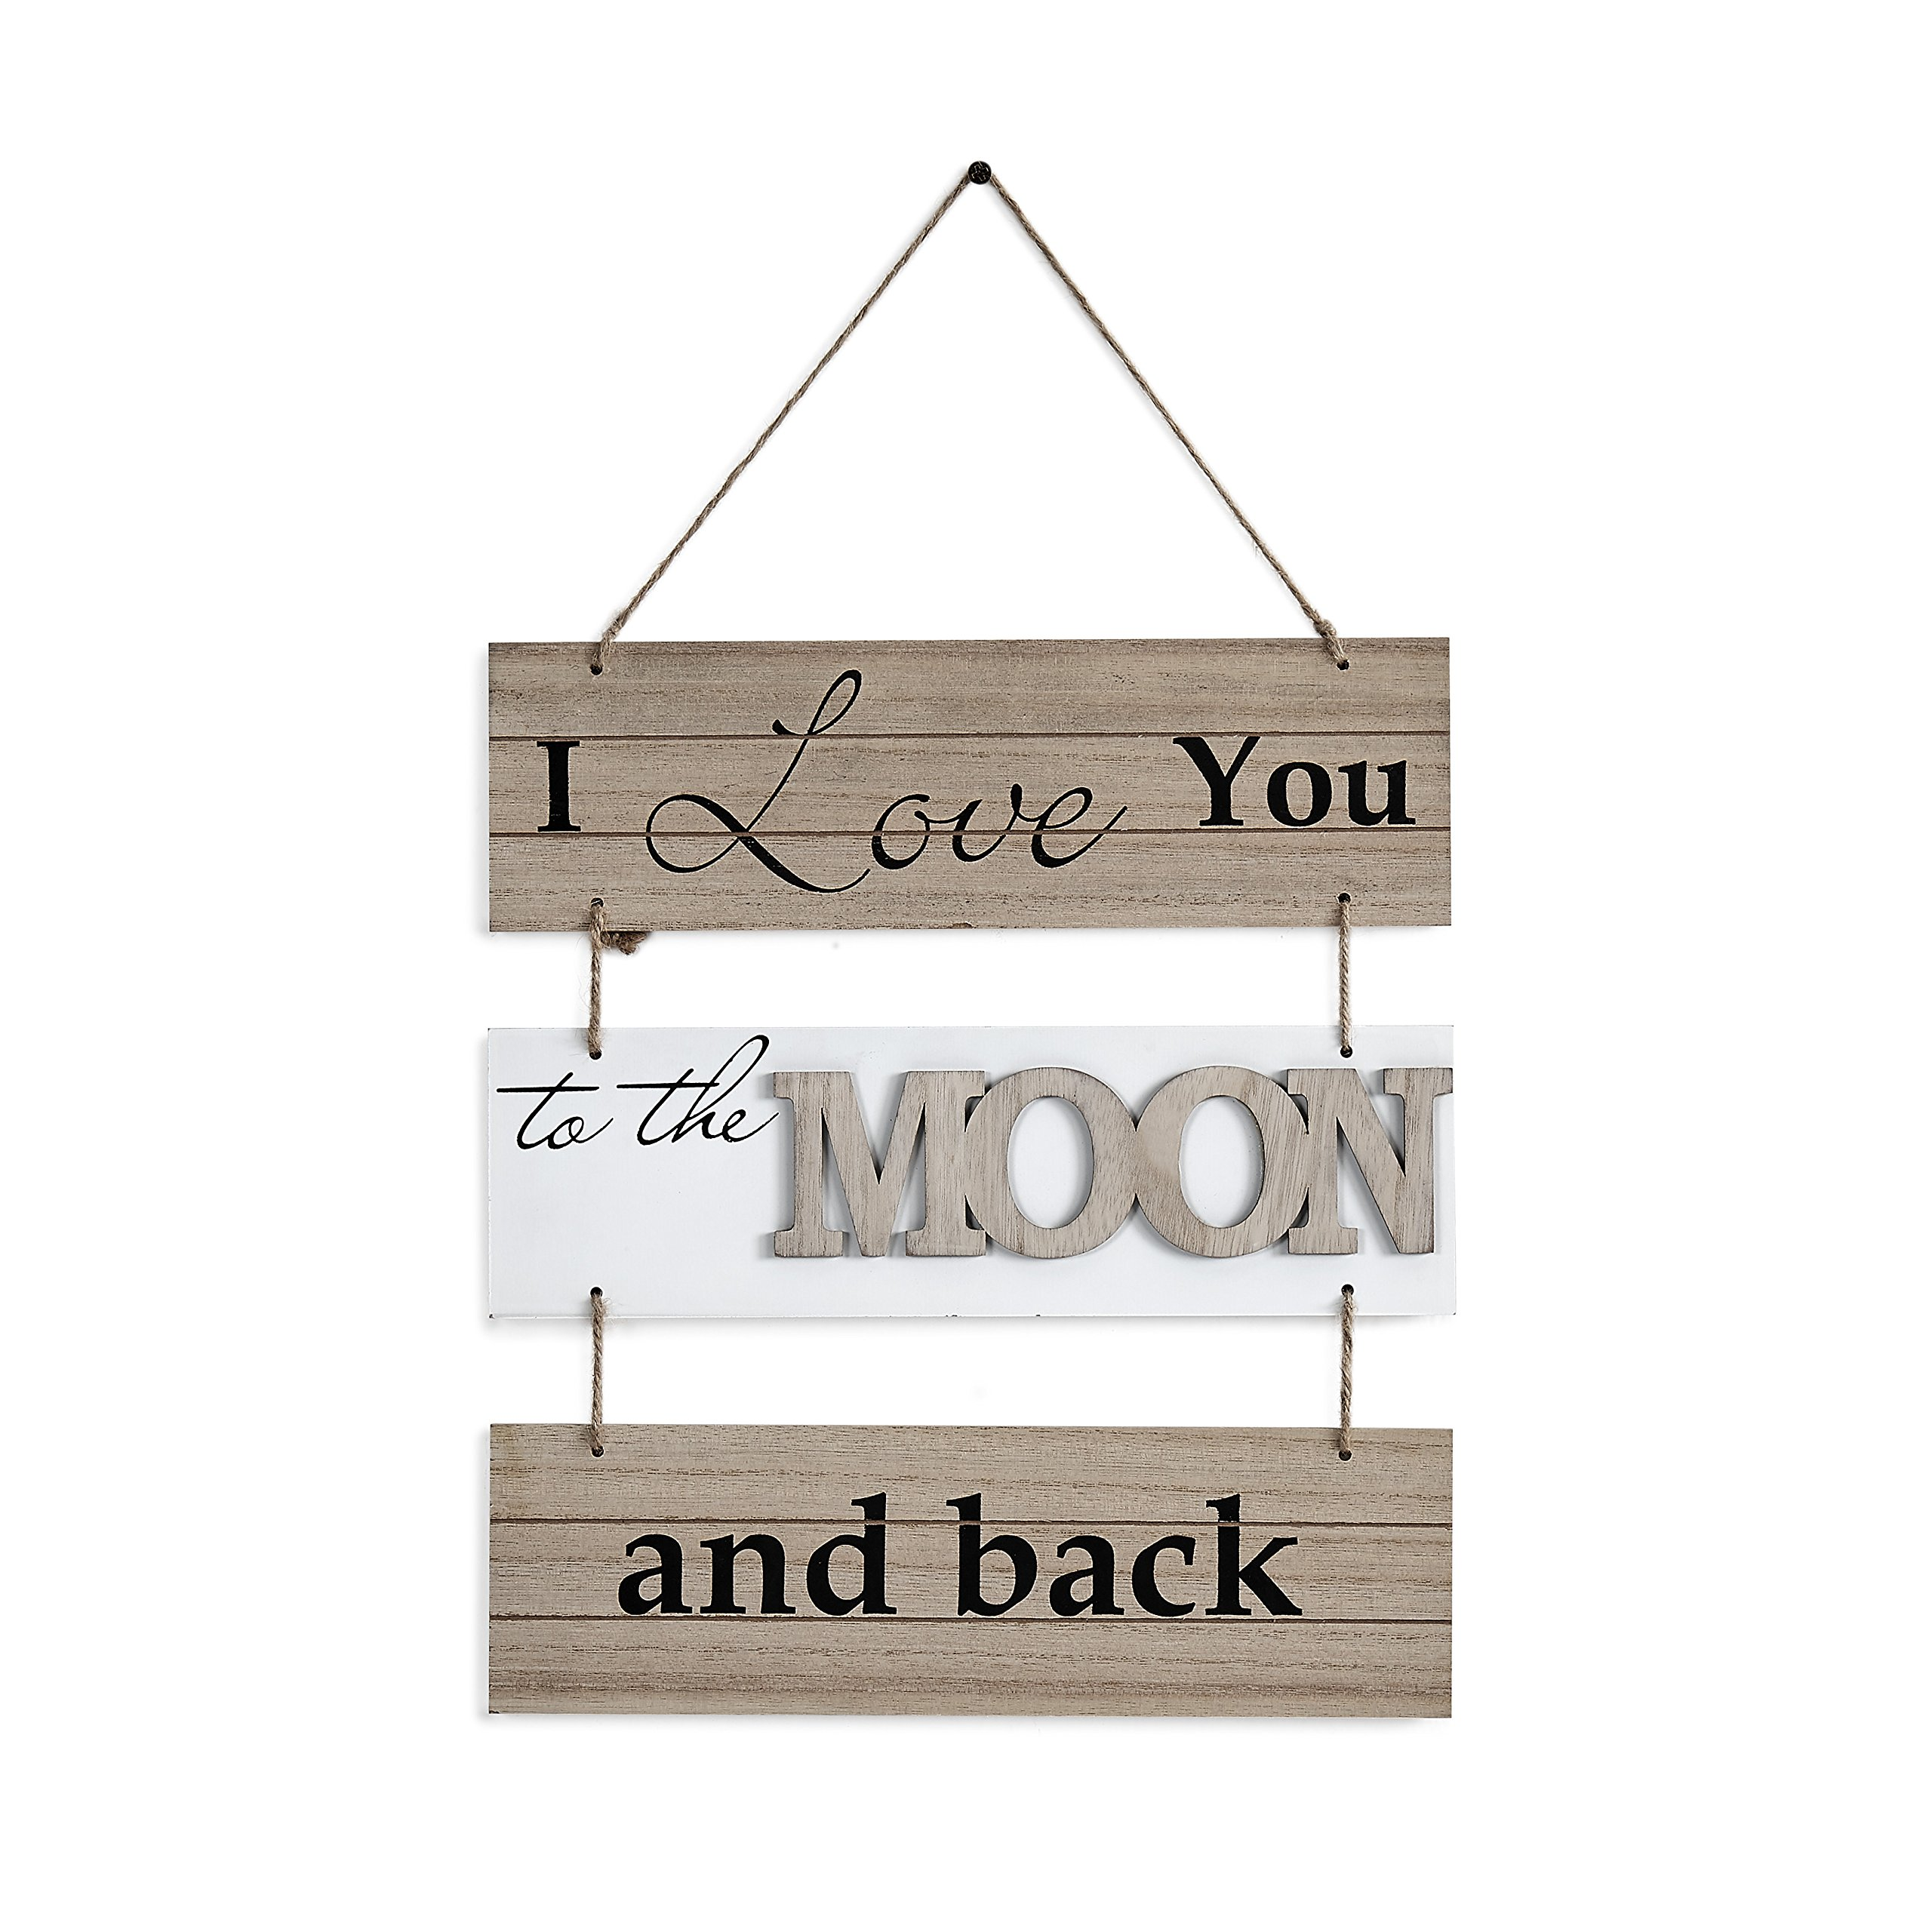 Danya B. ''I Love to the Moon and Back'' Sectioned Wooden Wall Plaque